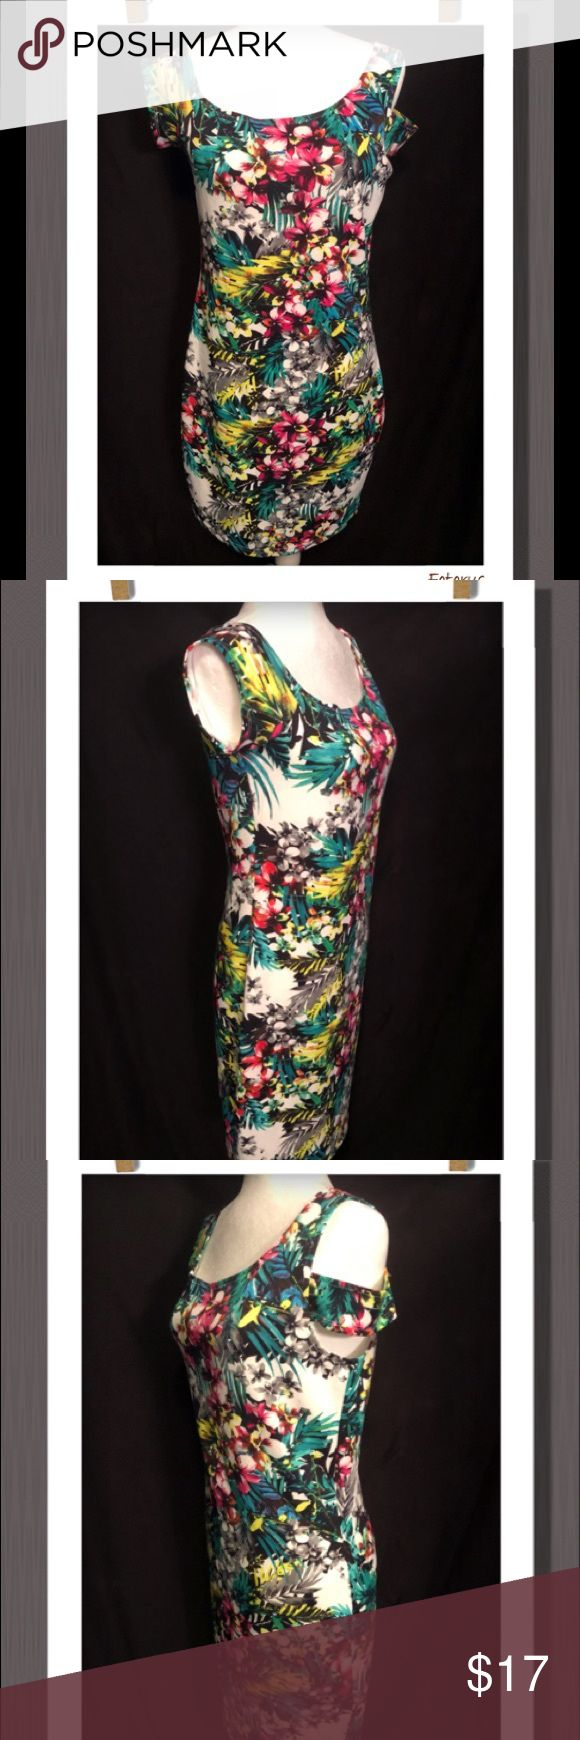 🌹Nicky Minaj Floral Dress🌹 Multi-Color Floral stretch dress with one side cold shoulder (super cute) Gold zipper back closure, really light&soft. Measures in length approx. 35-1/2in. Bust Aprox. 18in across measurements taken unstretched. Would definitely compliment your shape. 95% Polyester  5% Spandex Nicky Manaj Dresses Midi